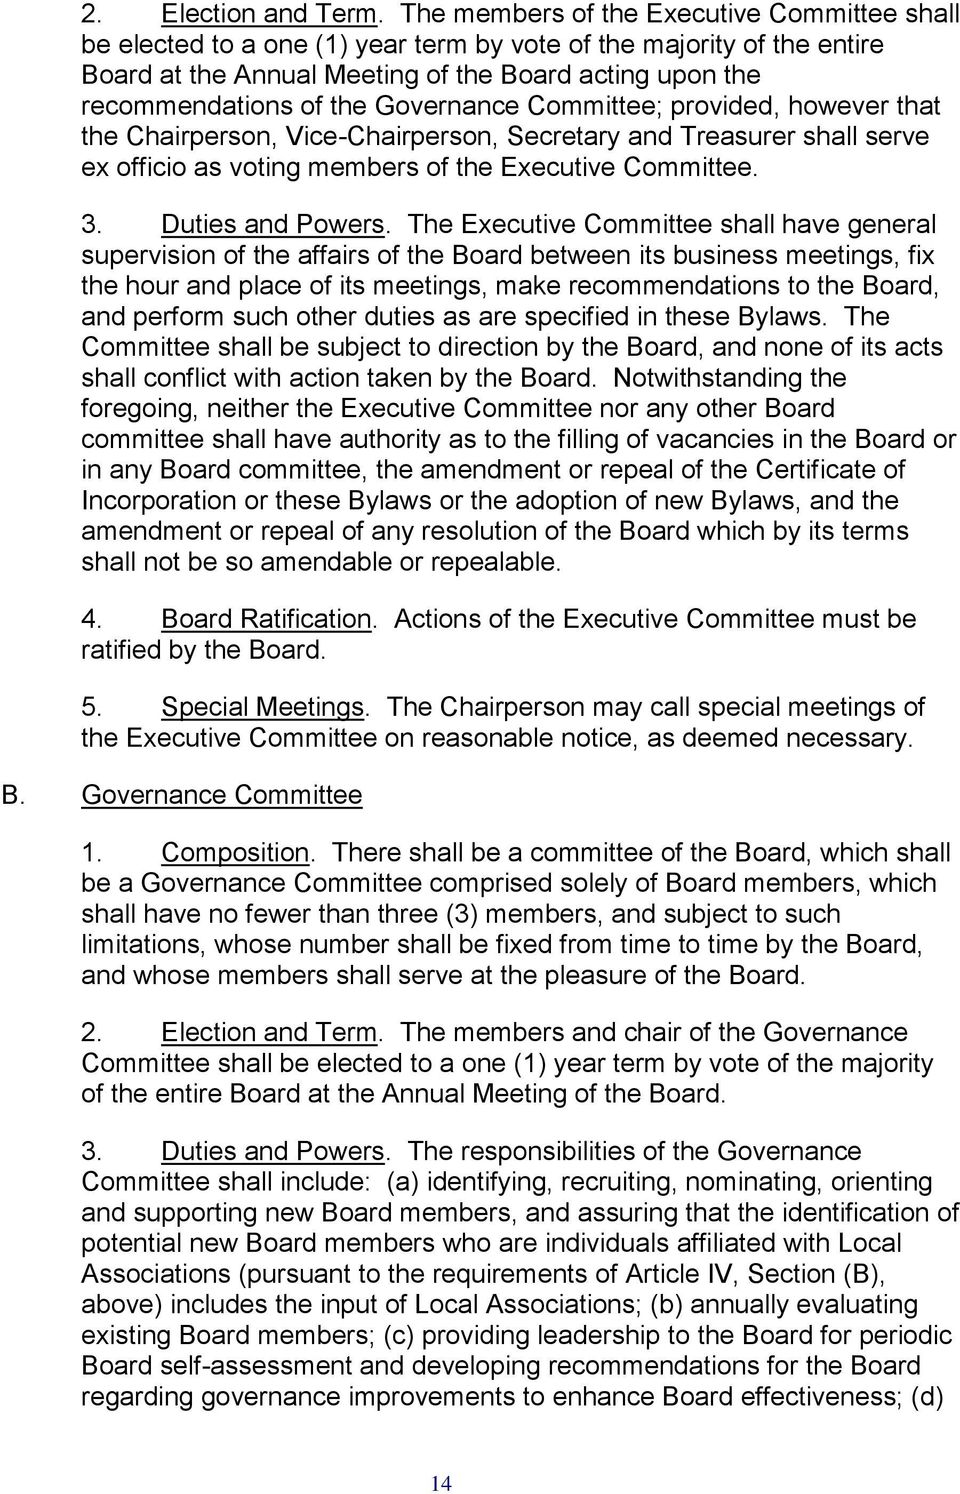 Governance Committee; provided, however that the Chairperson, Vice-Chairperson, Secretary and Treasurer shall serve ex officio as voting members of the Executive Committee. 3. Duties and Powers.